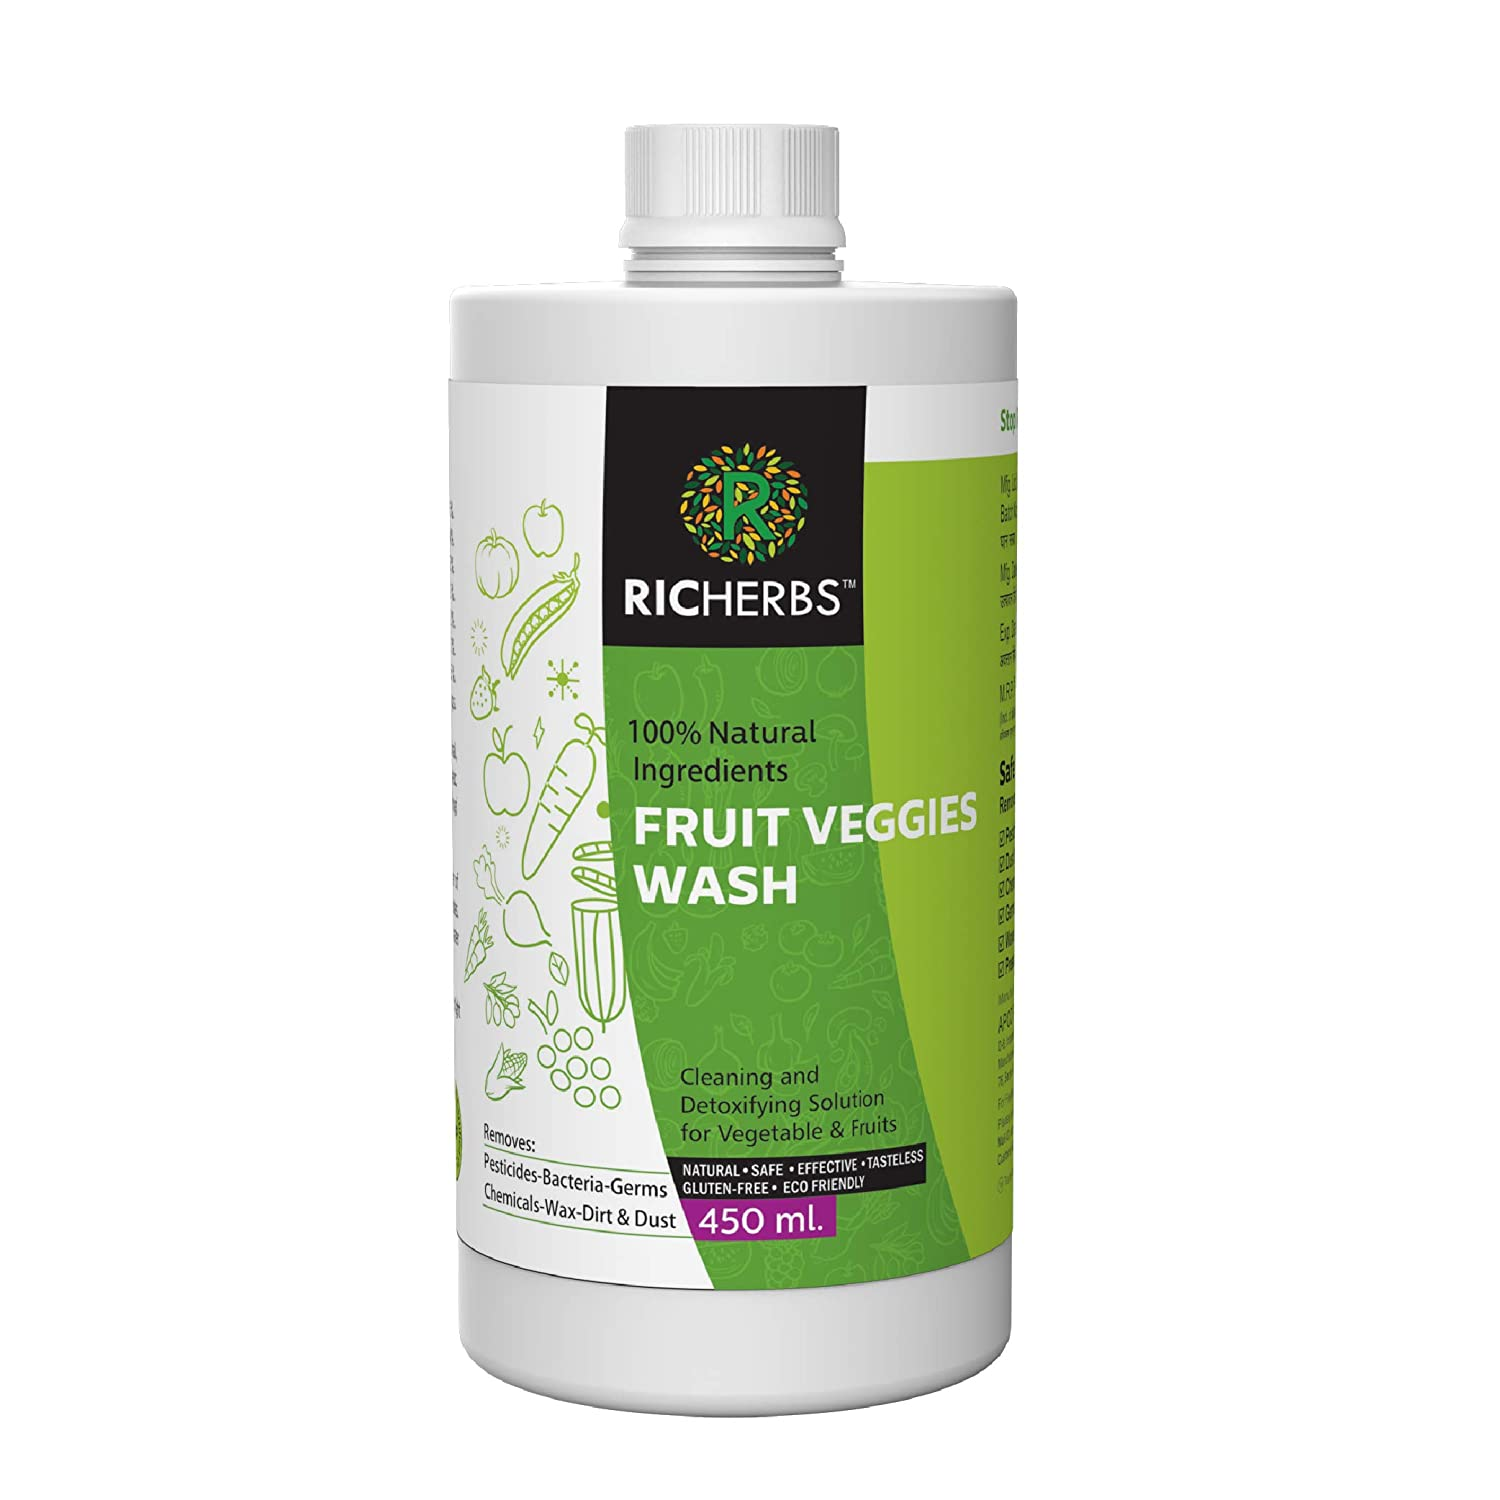 Richerbs fruits & Vegitable wash 450 ml | Removes Pesticides, Germs, Bacteria & Fungus | With Anti Microbial properties | 100% Safe & Natural